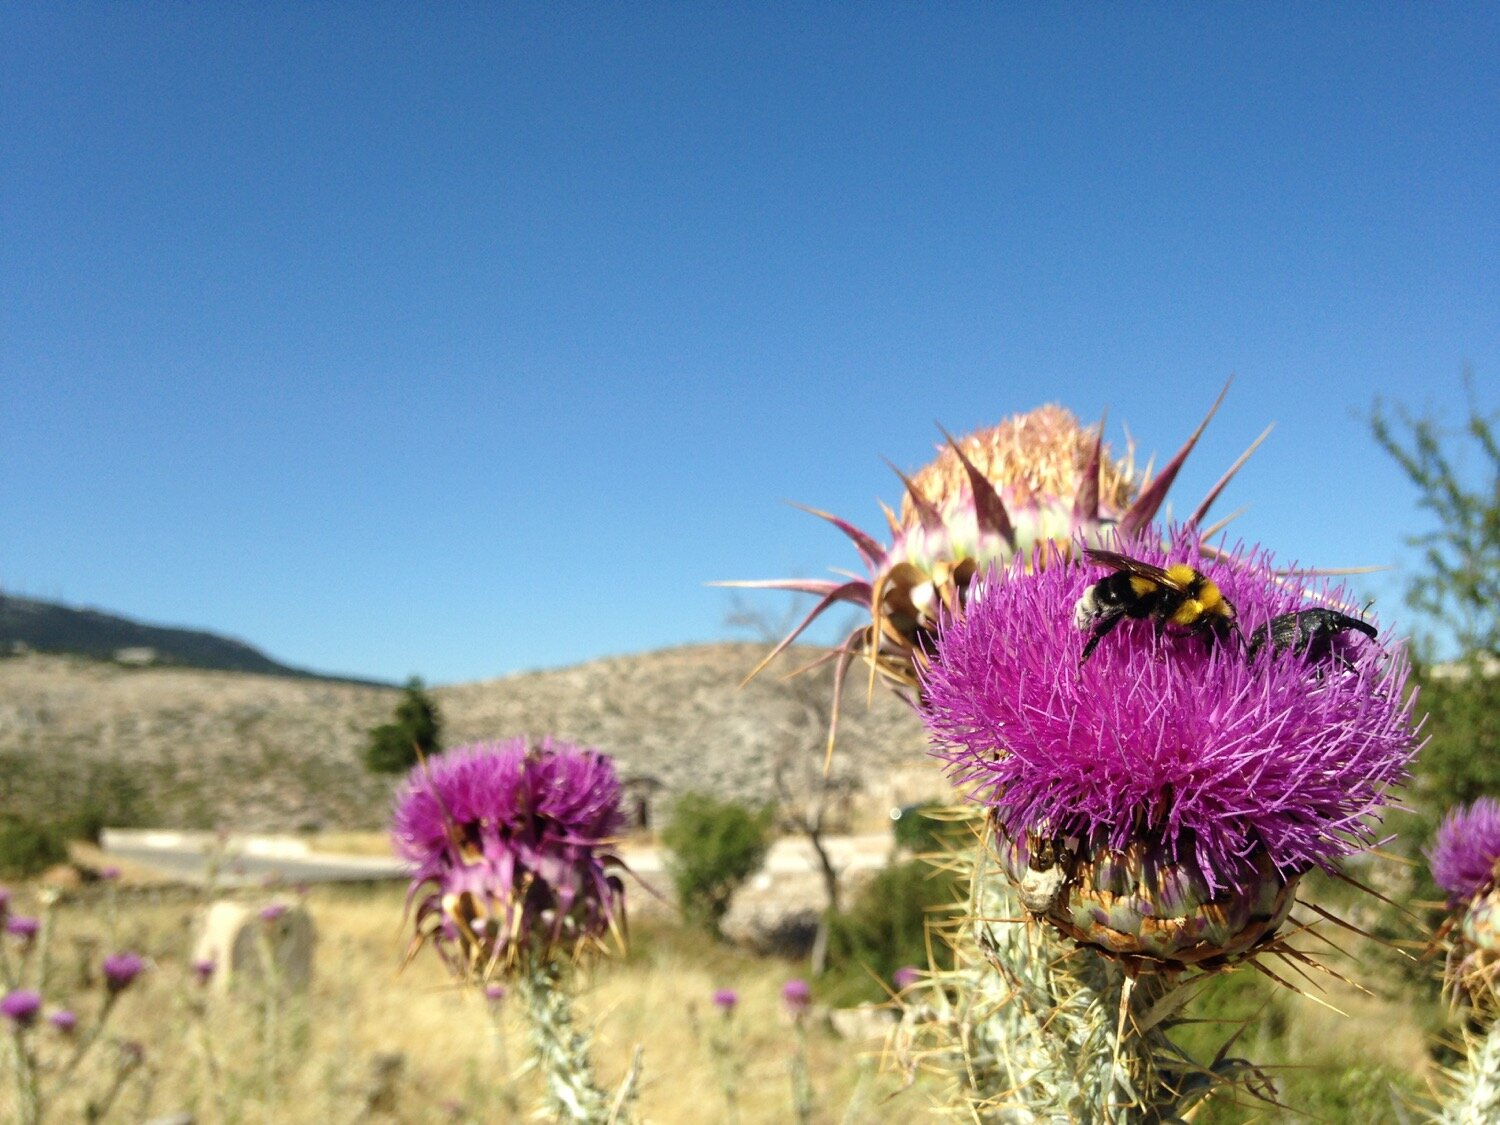 A bee resting on a pink wild thistle blossom